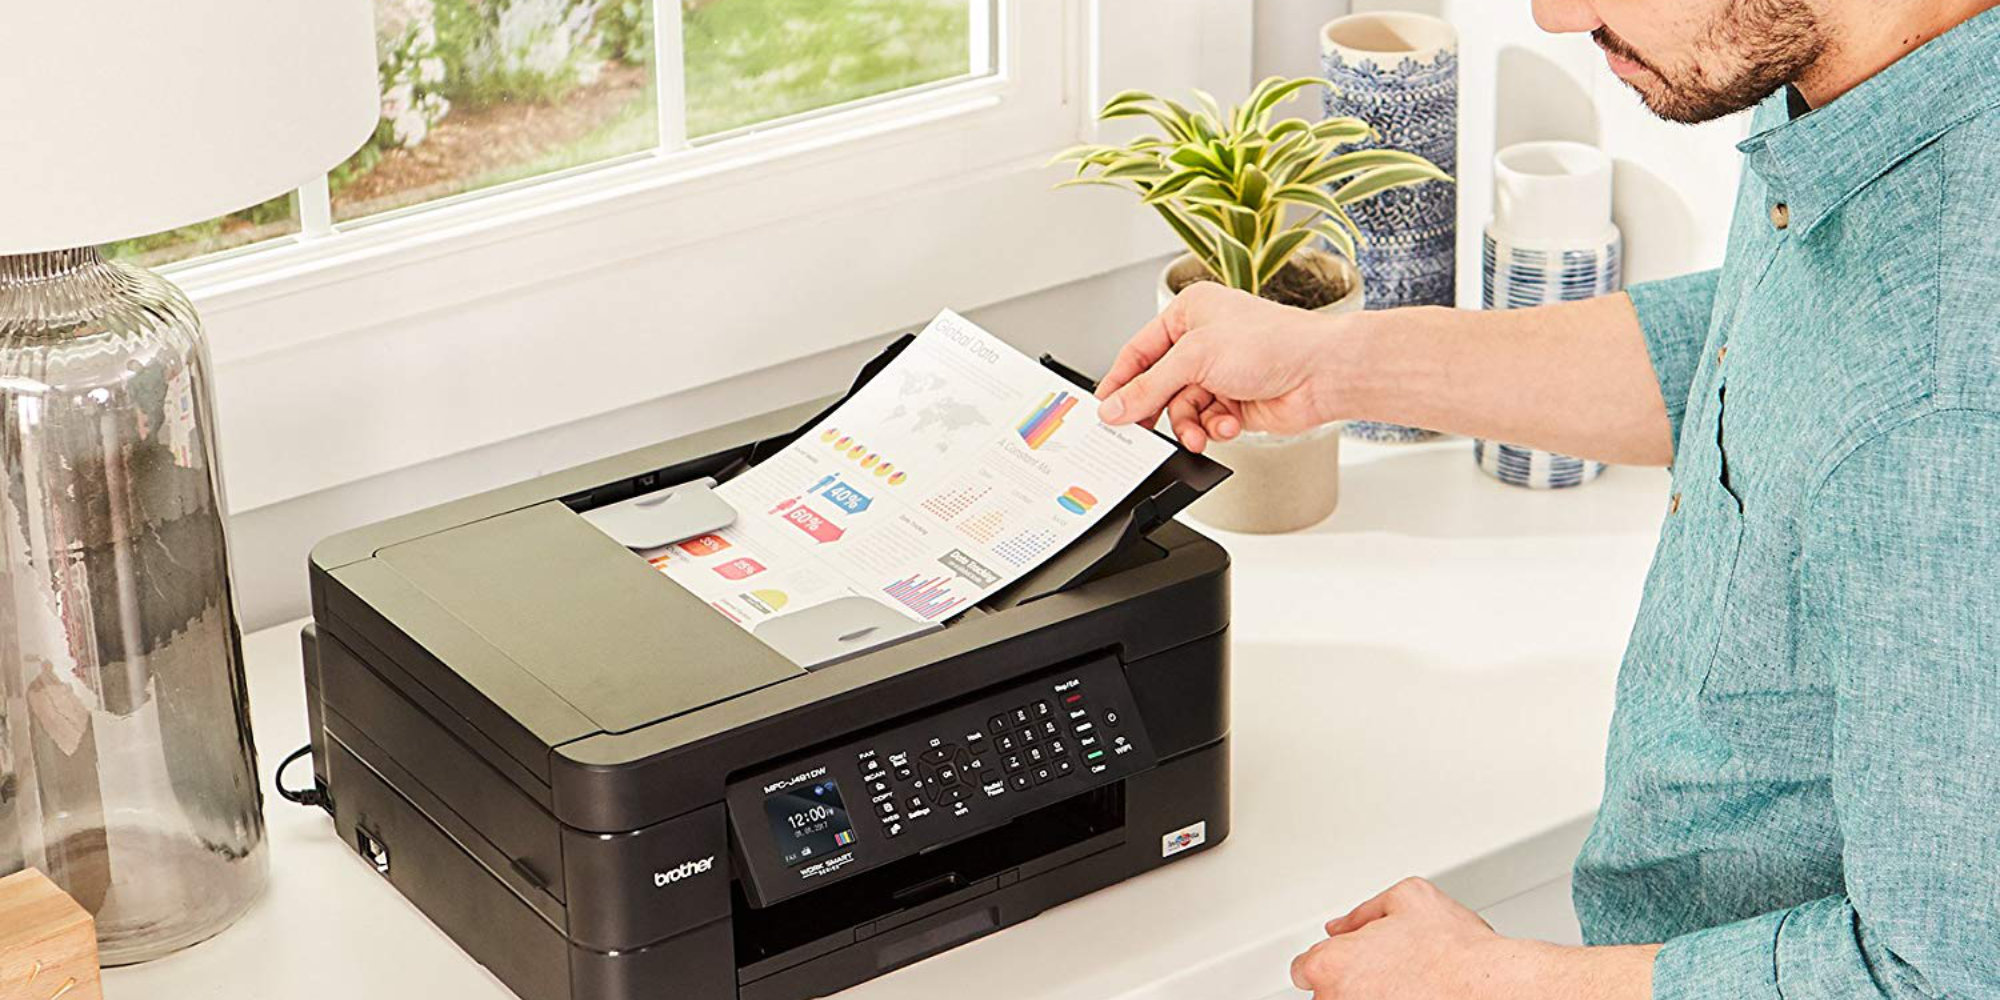 AirPrint and Google Cloud Print, make this Brother AiO a versatile office solution: $50 (Reg. up to $80)